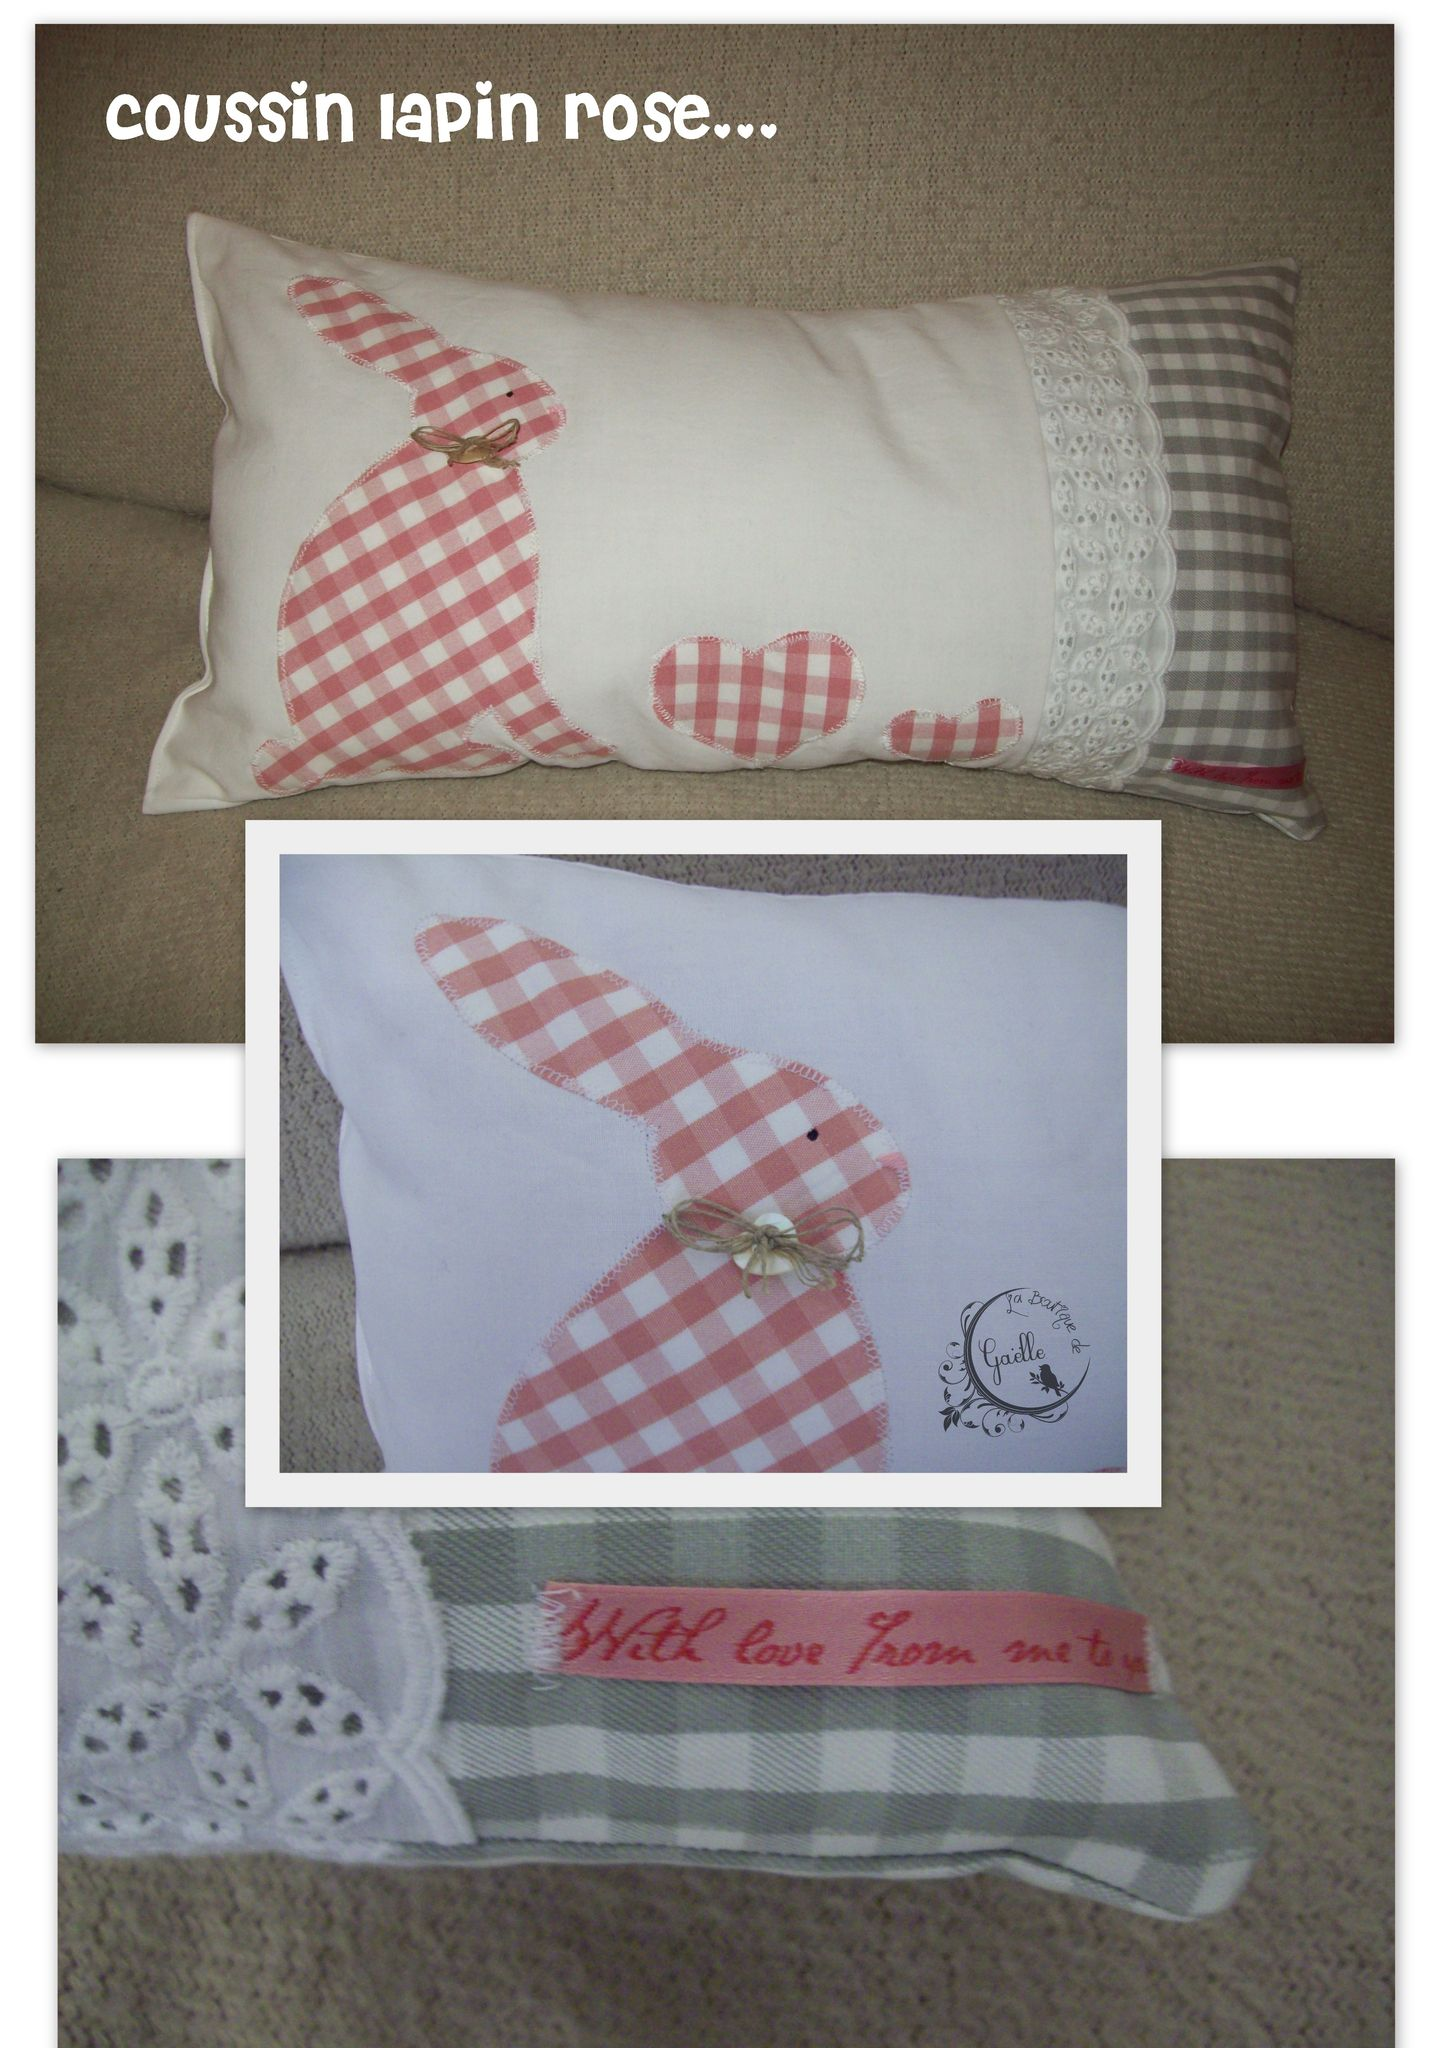 Coussin lapin rose...